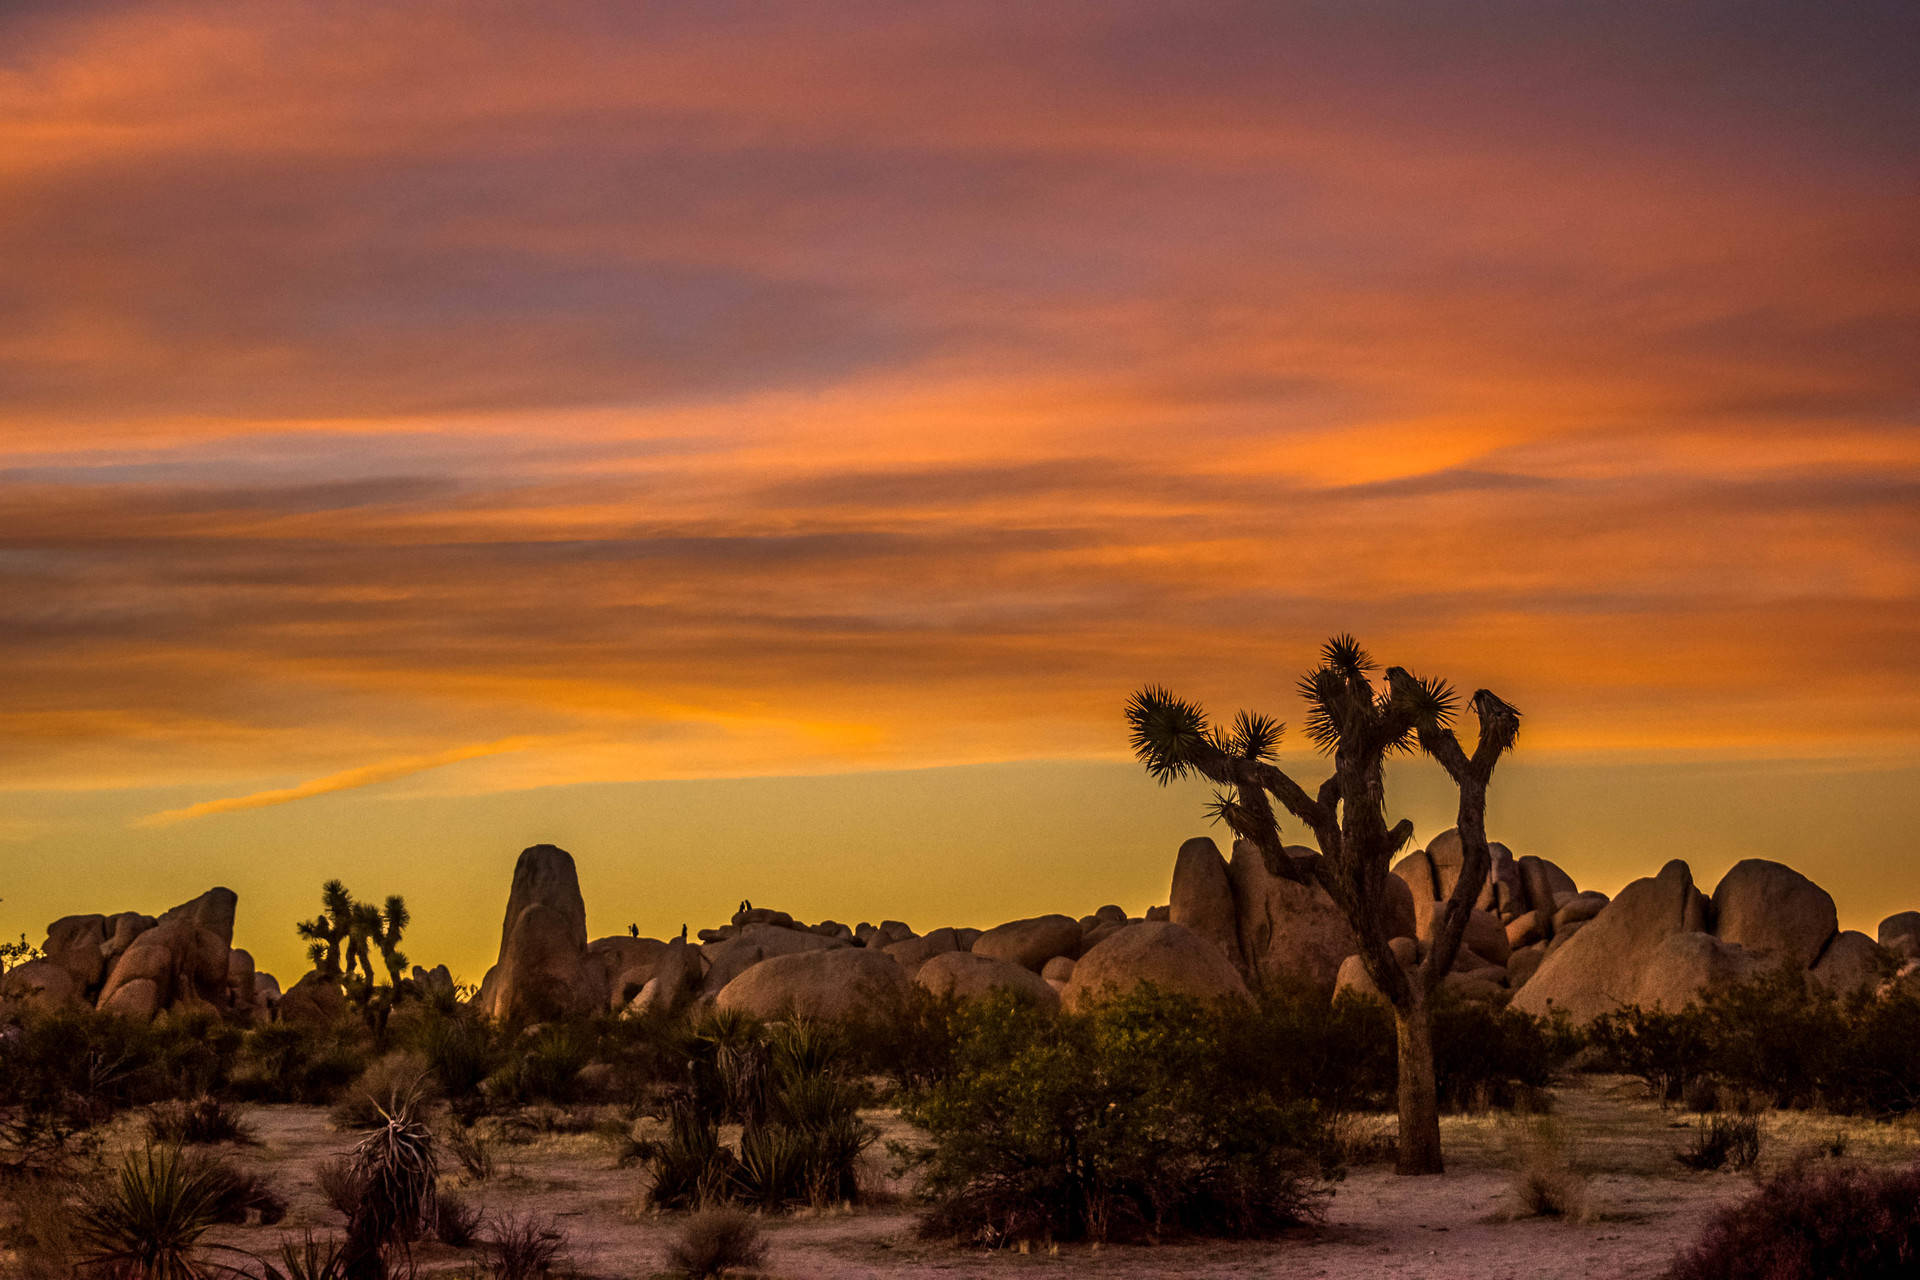 Joshua Tree National Park, free to enter (along with all the rest of them) this Sunday, Aug. 25. Ashley Urdang/KQED